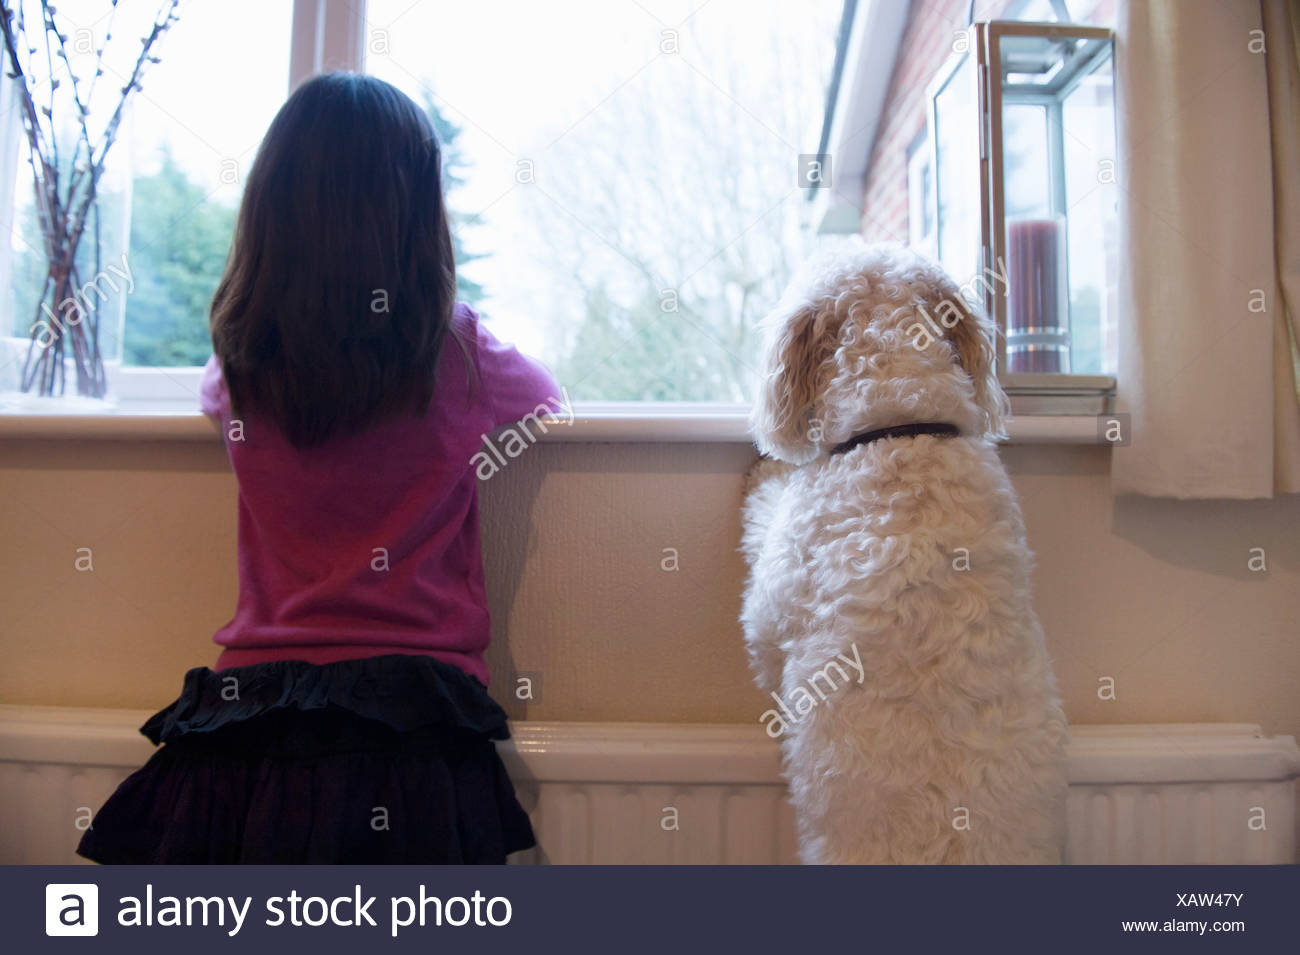 Girl and her pet dog standing and looking out of window - Stock Image